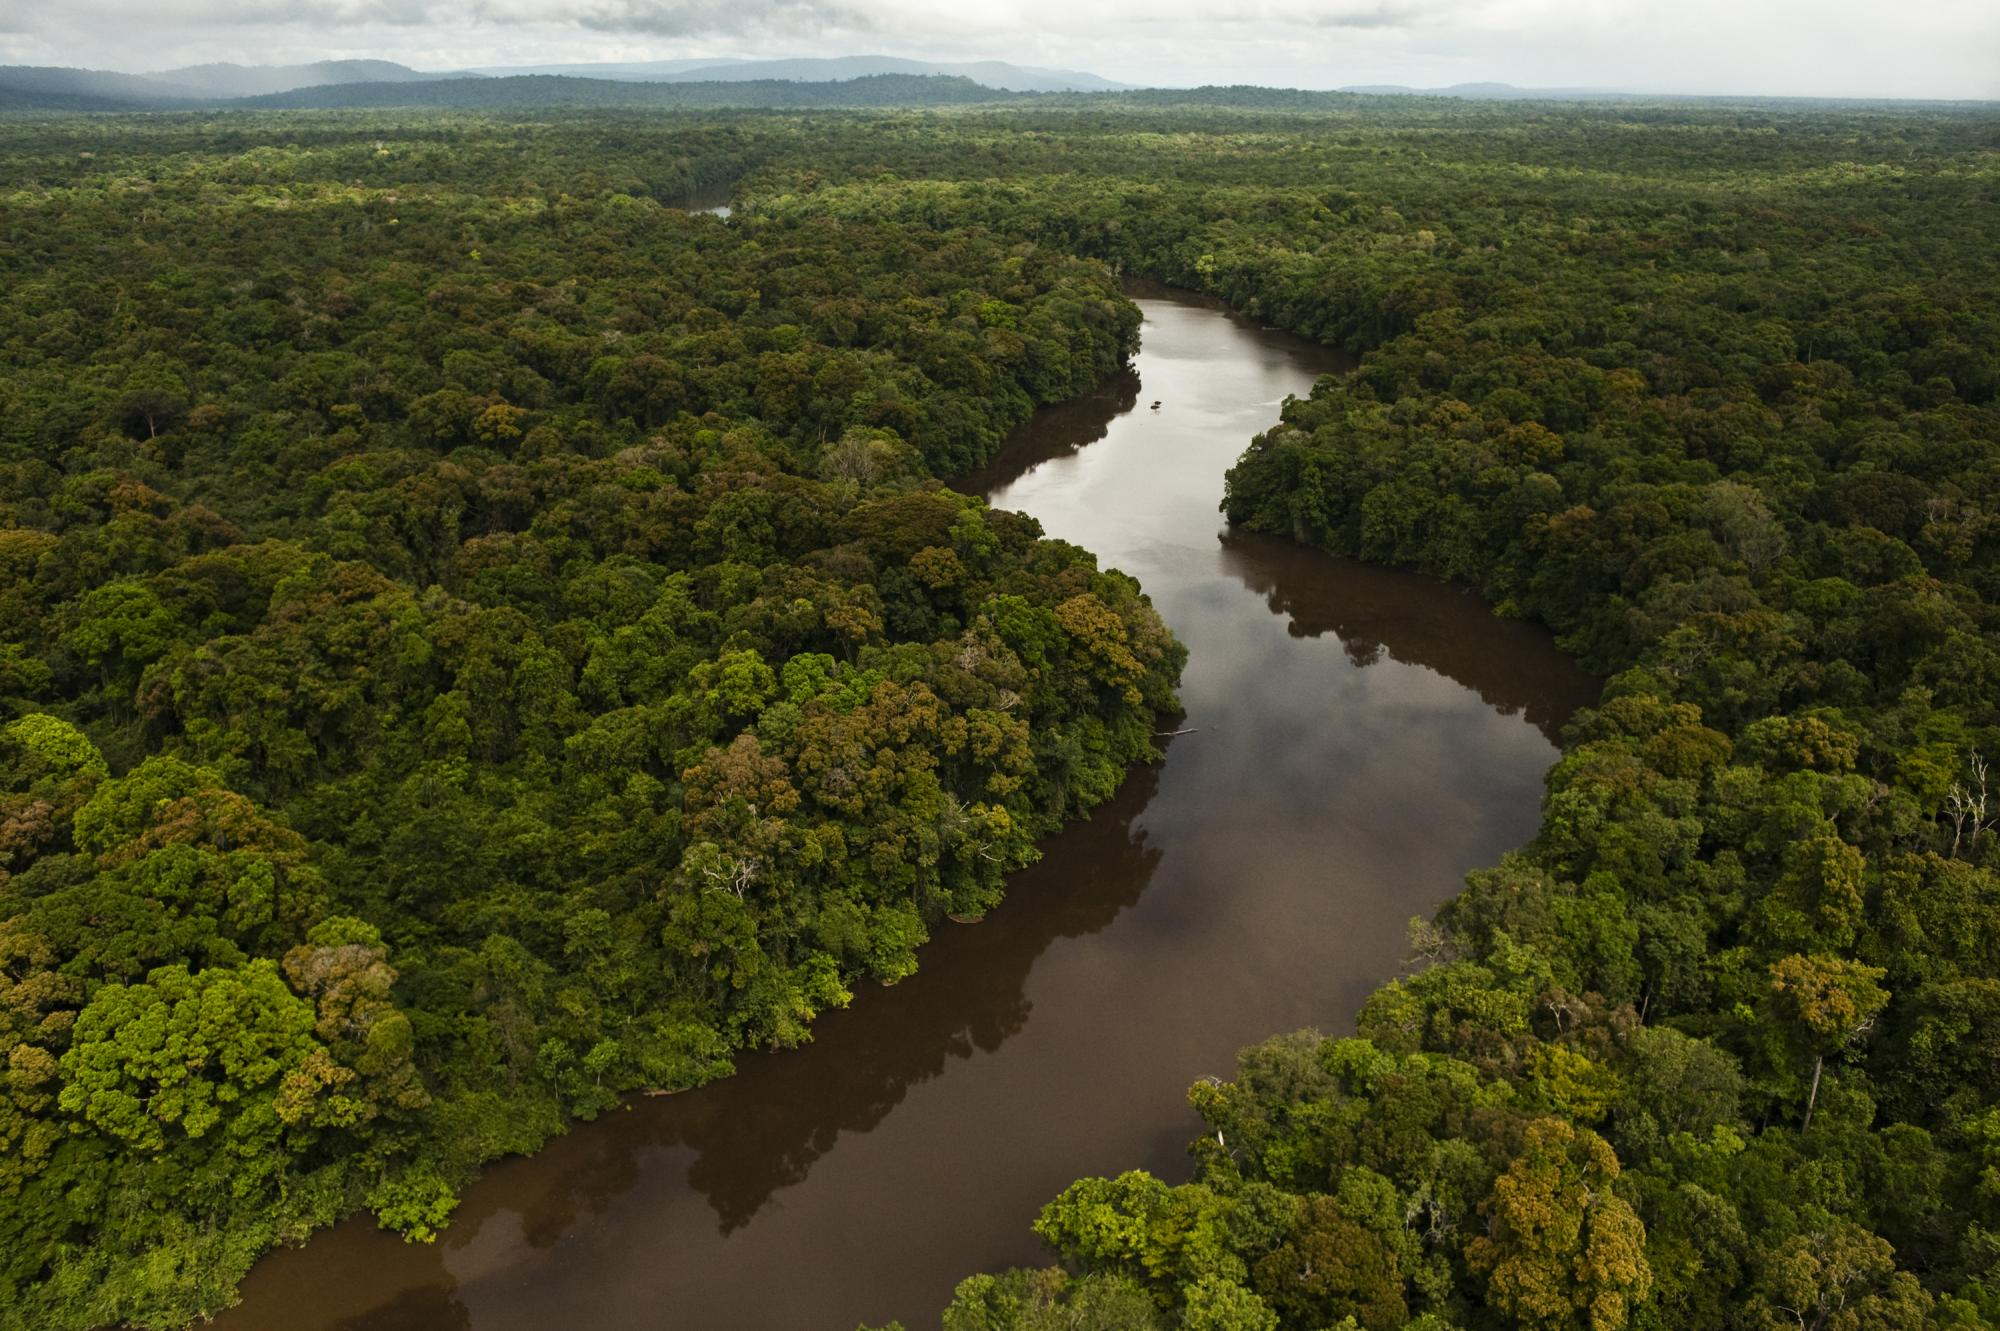 The Essequibo River, the longest river in Guyana and the largest river between the Orinoco and Amazon, rises in the Acarai Mountains near the Brazil-Guyana border and flows to the north for more than 600 miles through forest and savanna into the Atlantic